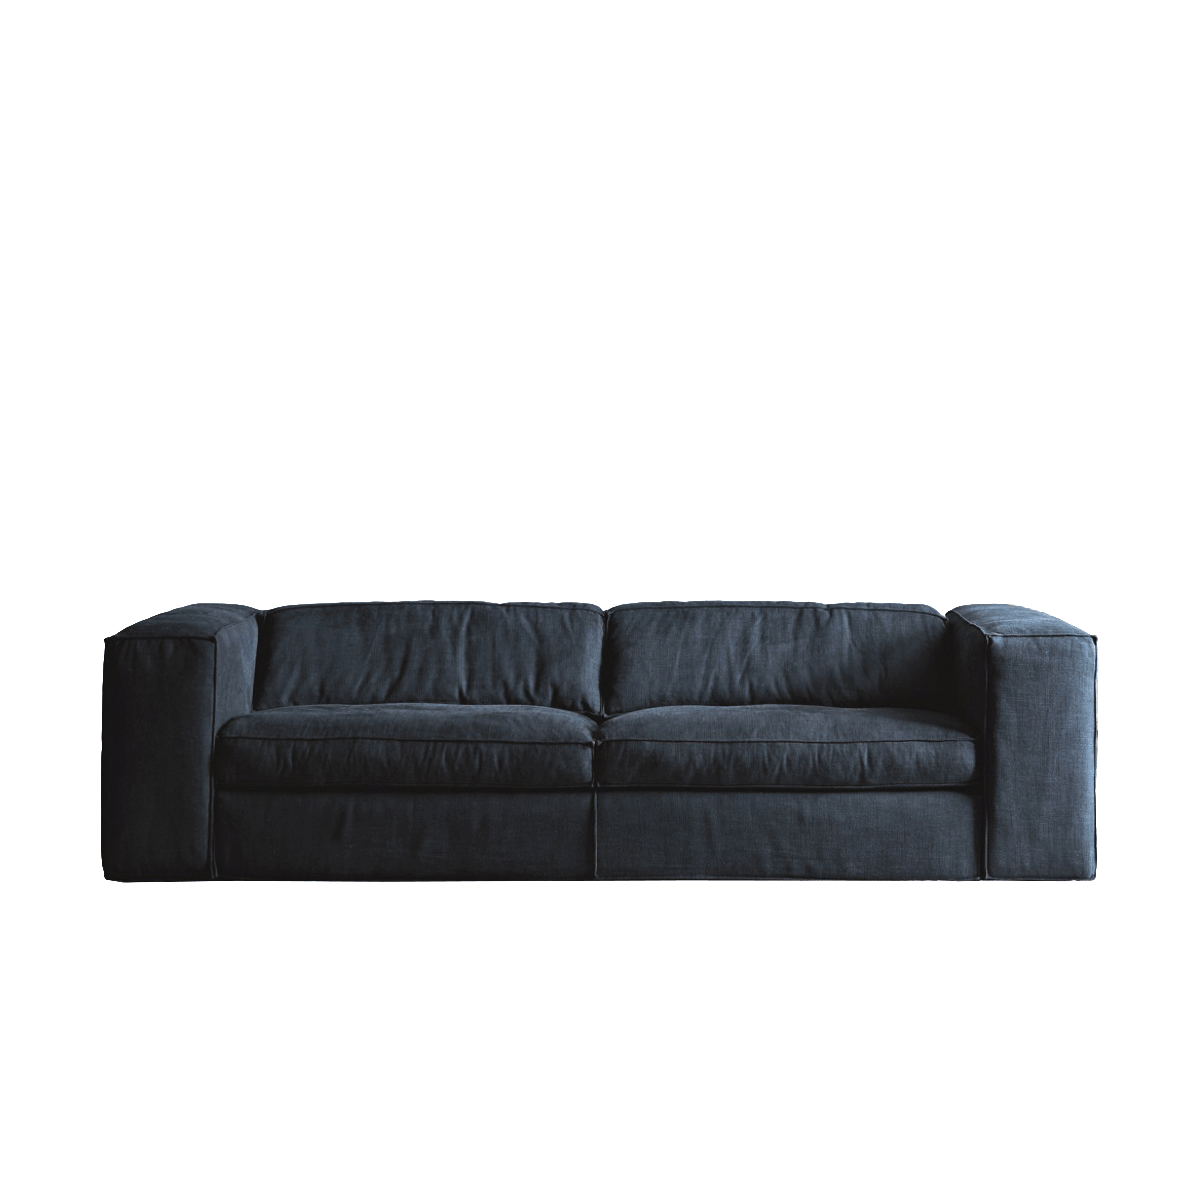 UP Two Seater Sofa - The Up sofa uses a simple mechanism similar to Lego's snap-on system that allows customers to choose the height of the backrest that best satisfies their comfort requirements. The back cushions can be placed on top of the low backrest to create a deeper seat and an overall higher backrest. The particular shape of the cushions ensures maximum stability. The goose-feather padded cushions and armrests create a particularly soft, snug sofa. Also available with raw-edged leather upholstery.  Additional removable cover is available, please enquire for prices.  Materials Structure in solid wood variable-density polyurethane foam coating covered with cotton and polyester fiber 380gr/sqm. The arm padding is completed, on the upper part, by a feather layer. The seat is sprung with elastic straps reinforced with polypropylene. Feet in black PVC 25 mm high. The seat cushions are in washed and sterilized goose down divided into compartments and covered with 100% white cotton fabric with a polyurethane foam core. The black cushions are filled with washed an sterilized goose down divided into compartments and covered | Matter of Stuff